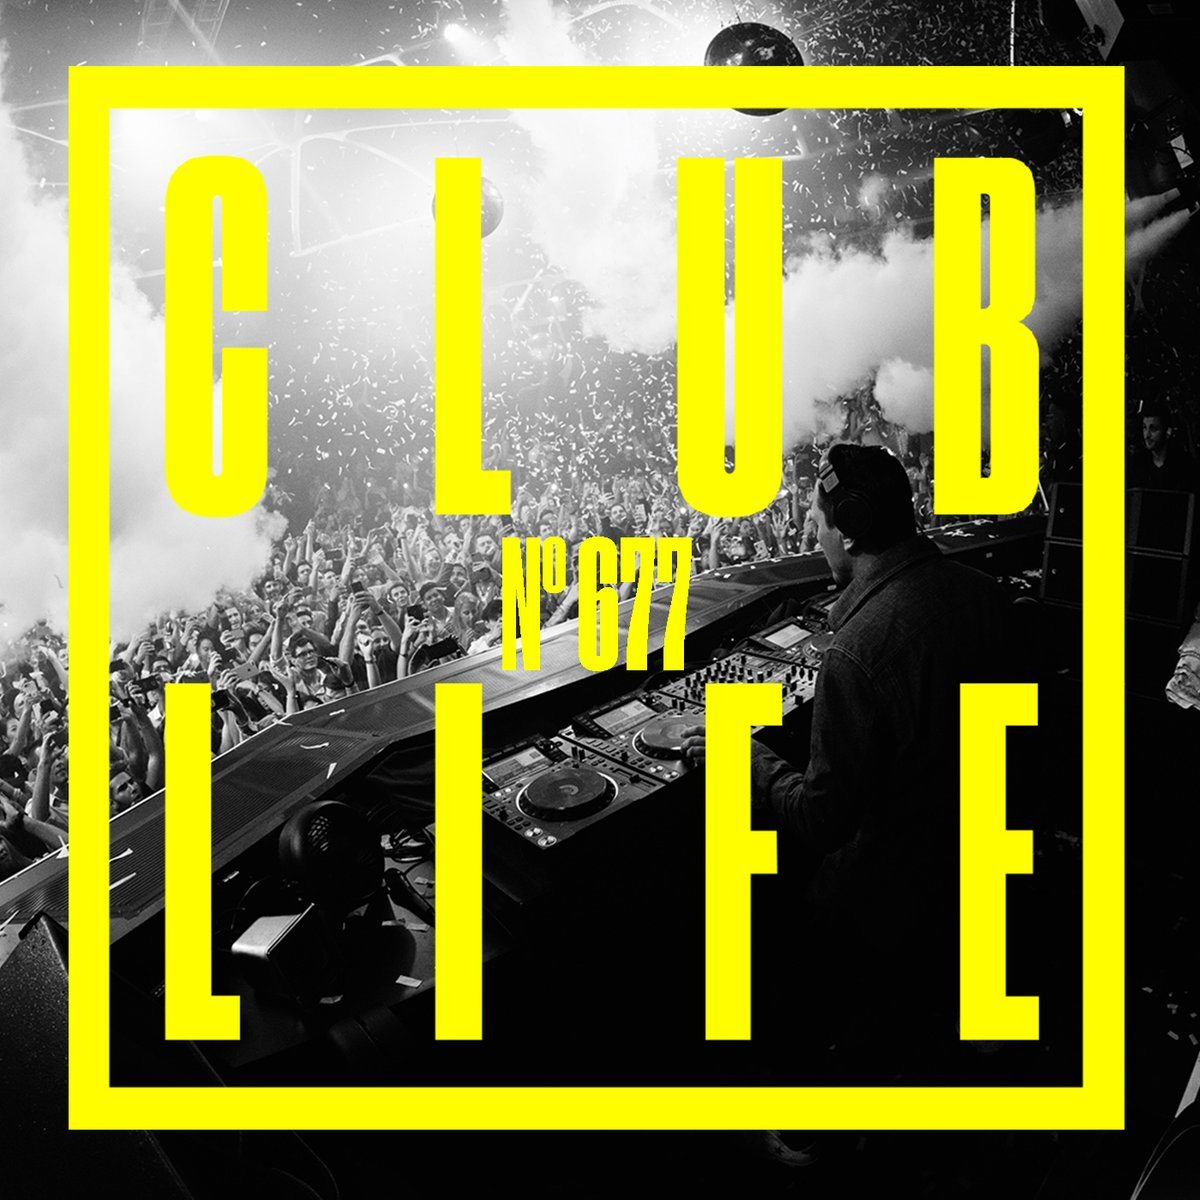 CLUBLIFE 677 is up now on my @YouTube and @SoundCloud page 🎶🎶 tsto.co/clublife677